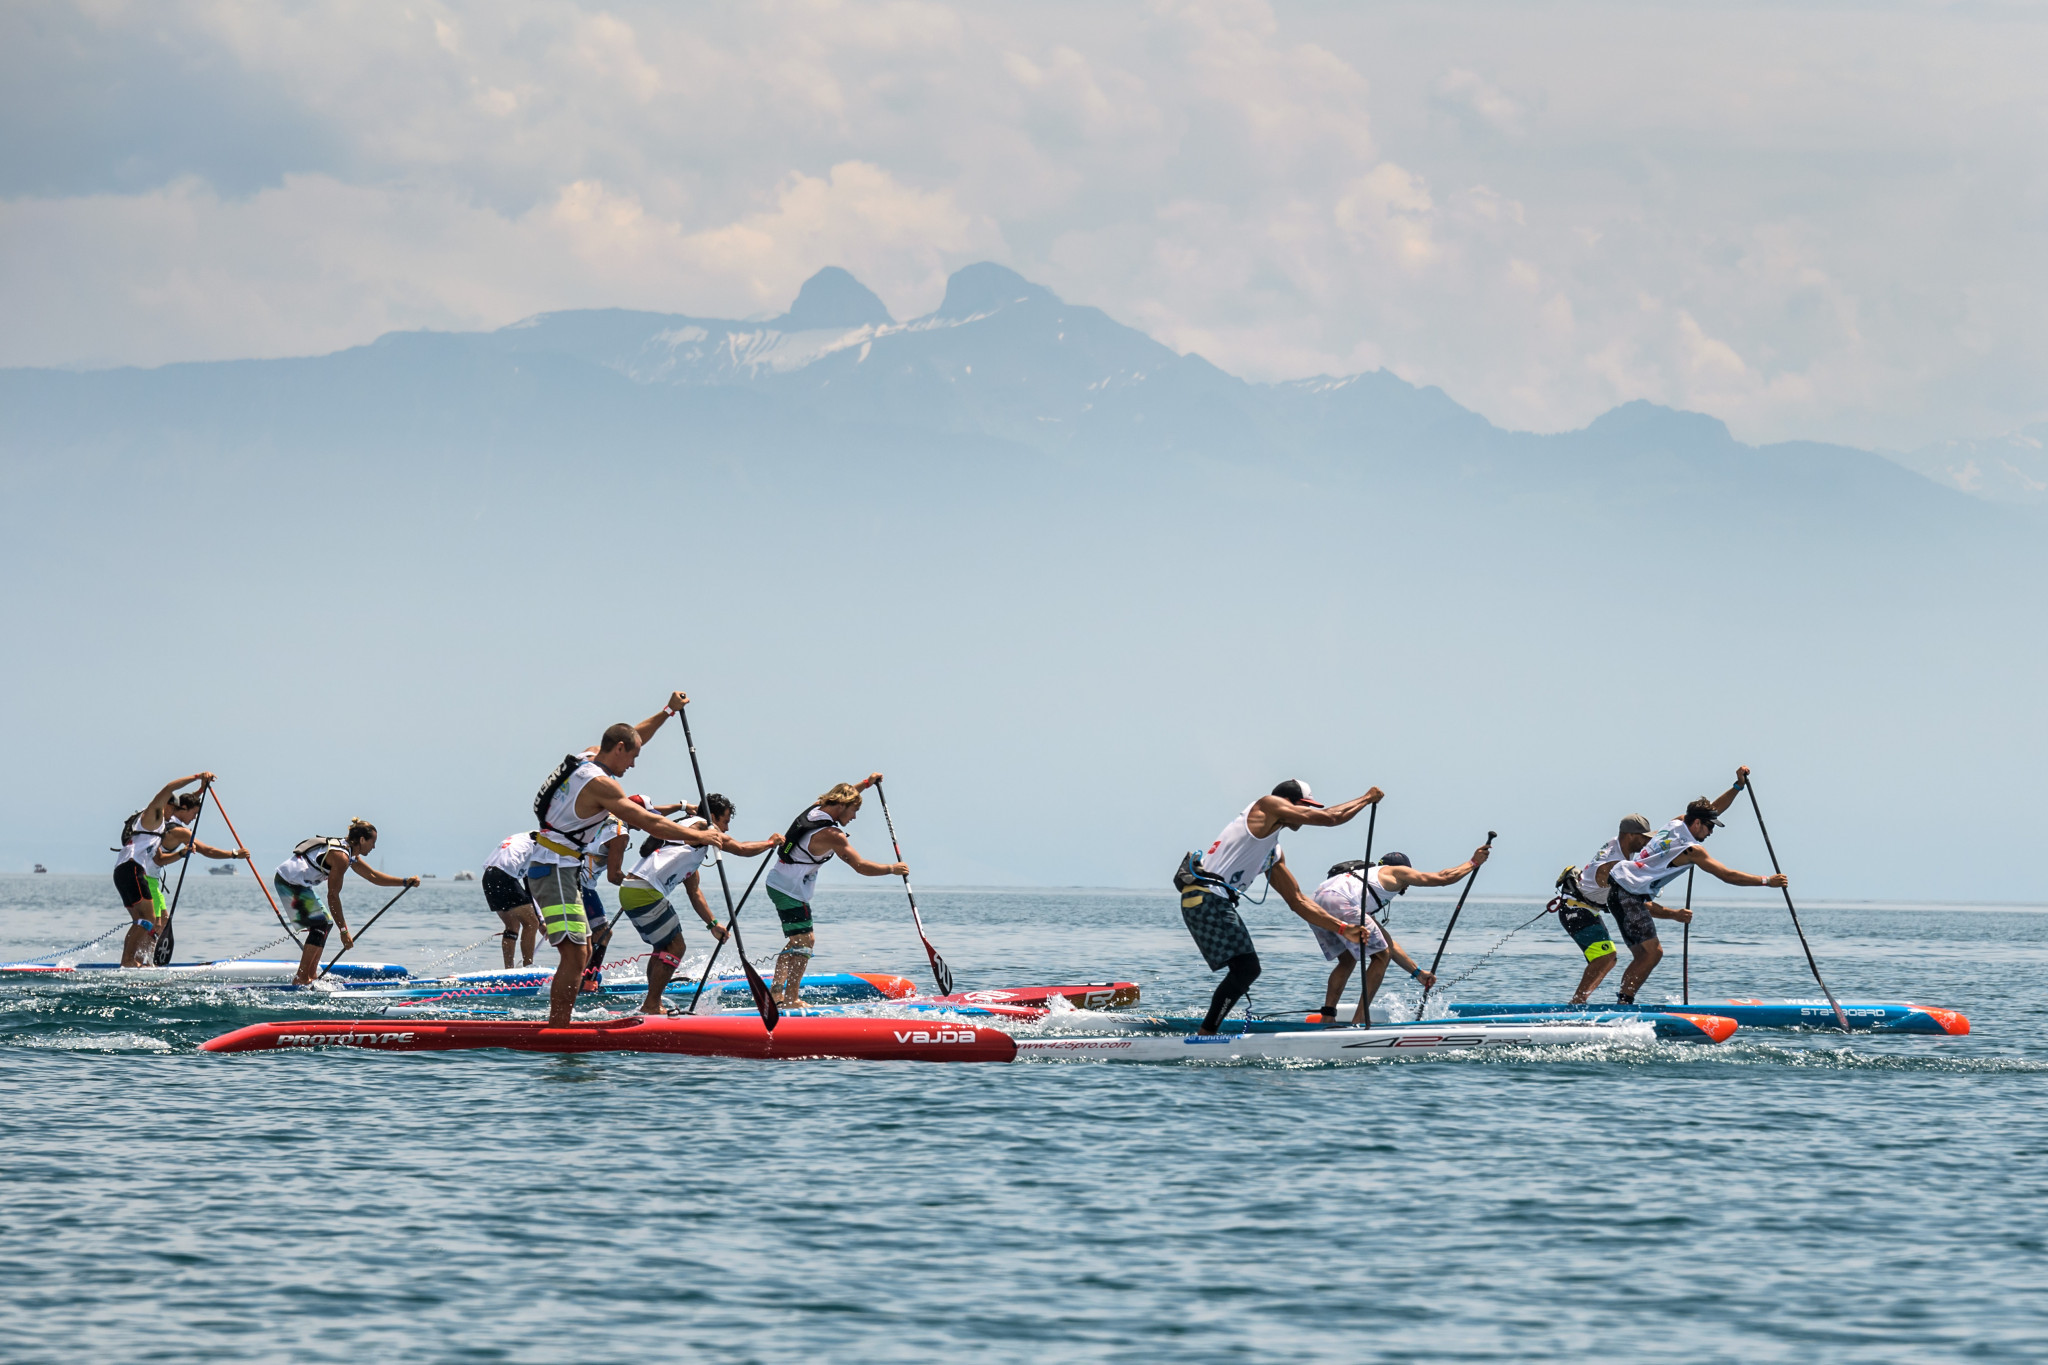 ISA re-affirms commitment to resolving stand-up paddle governance dispute through CAS